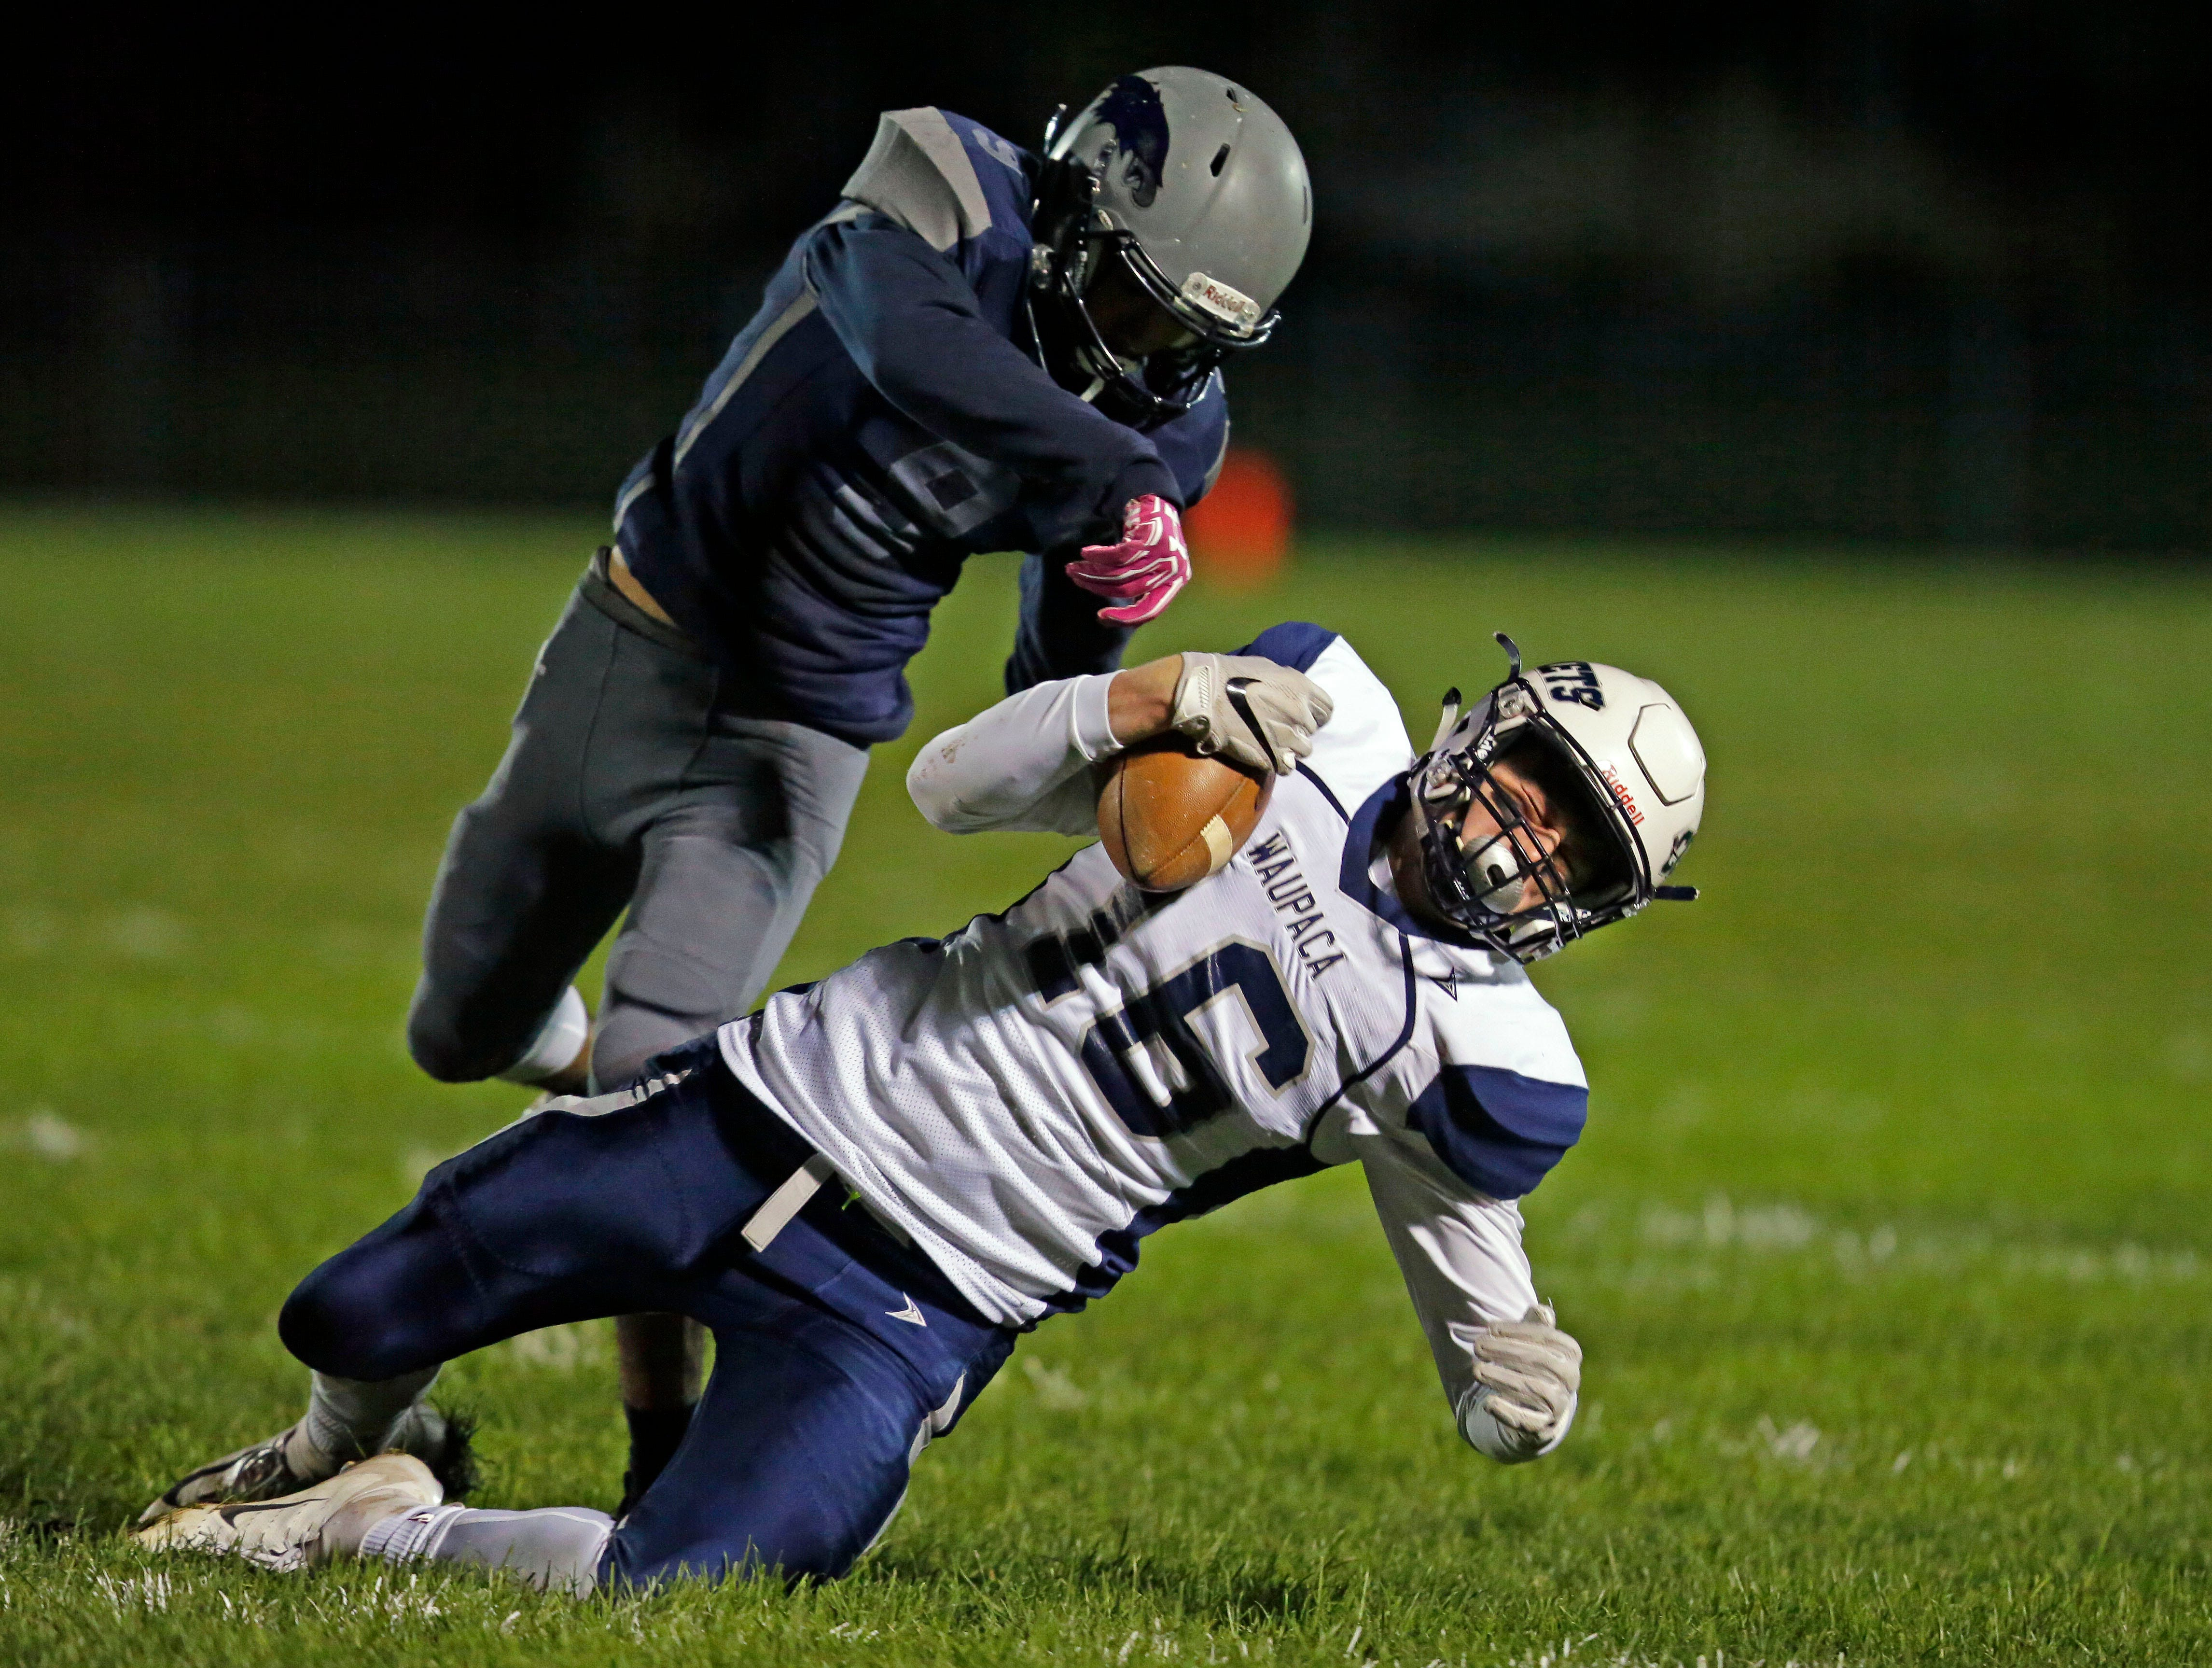 Hunter Marcom of Waupaca is brought down by Frankie Rasmus of Xavier in a Bay Conference football game Friday, October 12, 2018, at Rocky Bleier Field in Appleton, Wis.